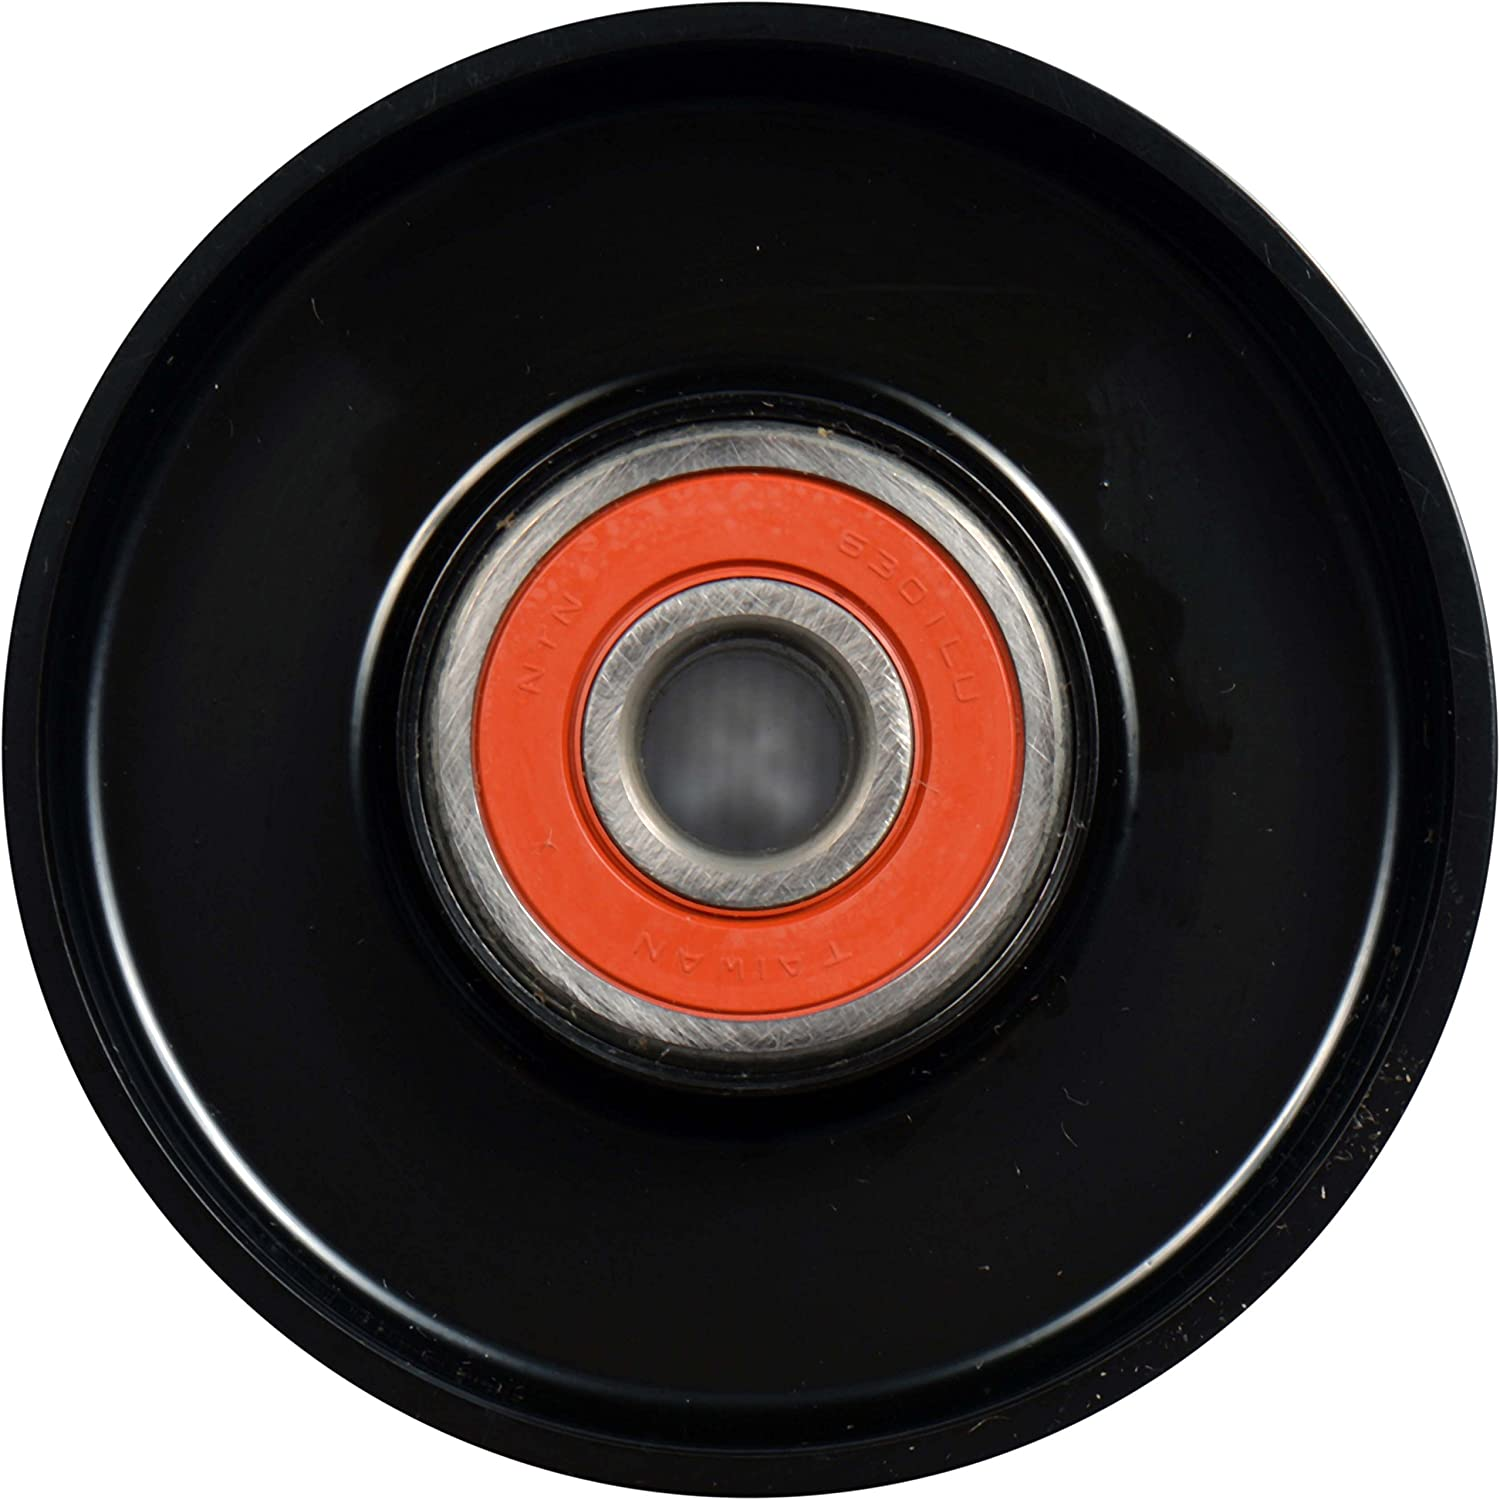 Continental 50025 Spring new work one after another Accu-Drive Pulley Large discharge sale